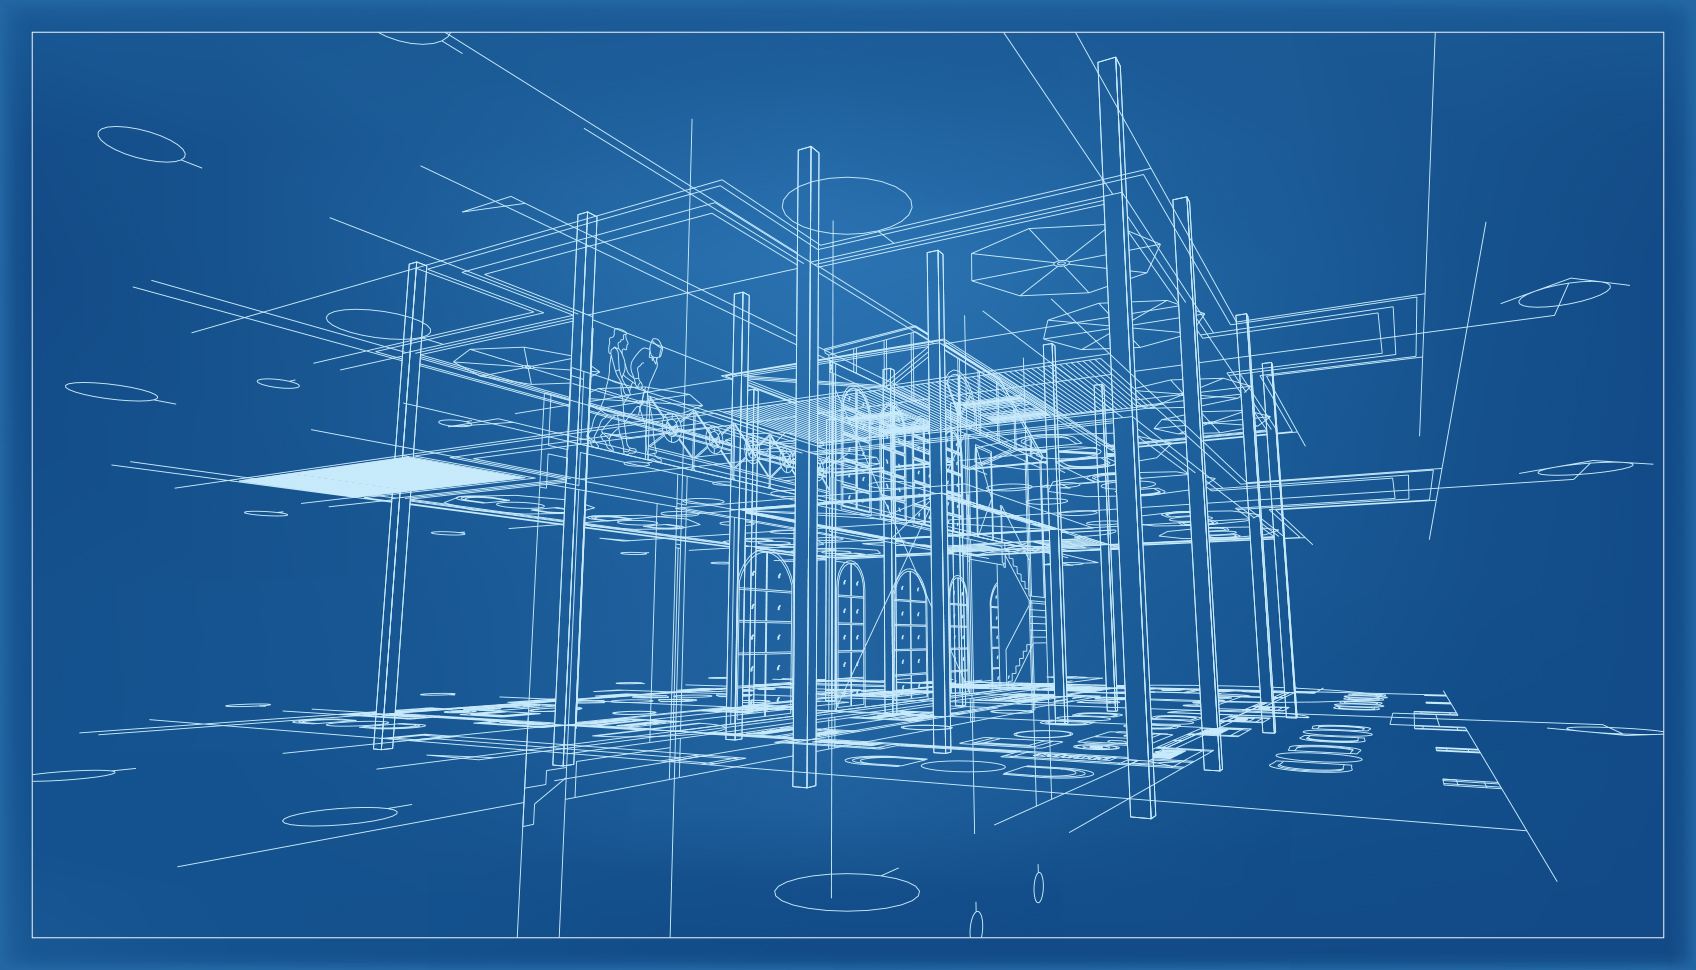 Blue prints house plans sorell consulting ltd for How to find blueprints of a house